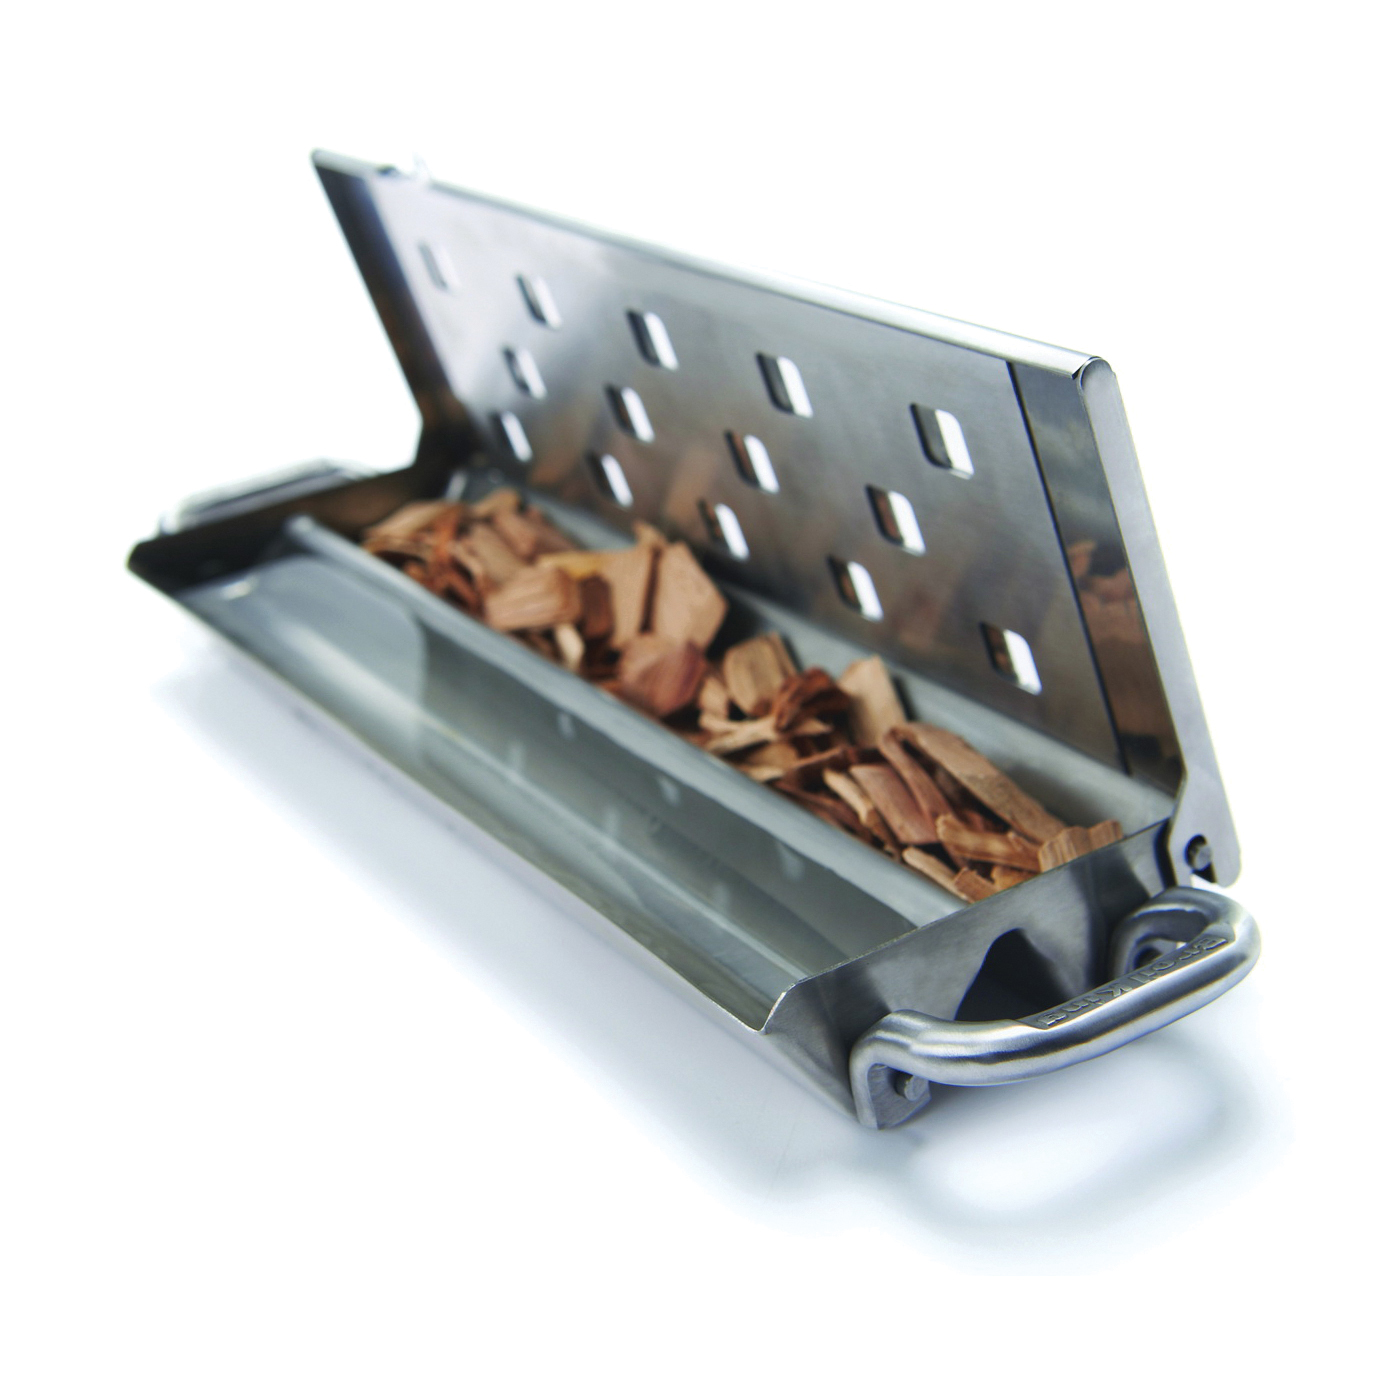 Picture of Broil King Imperial 60190 Smoker Box with Slider Lid, Stainless Steel